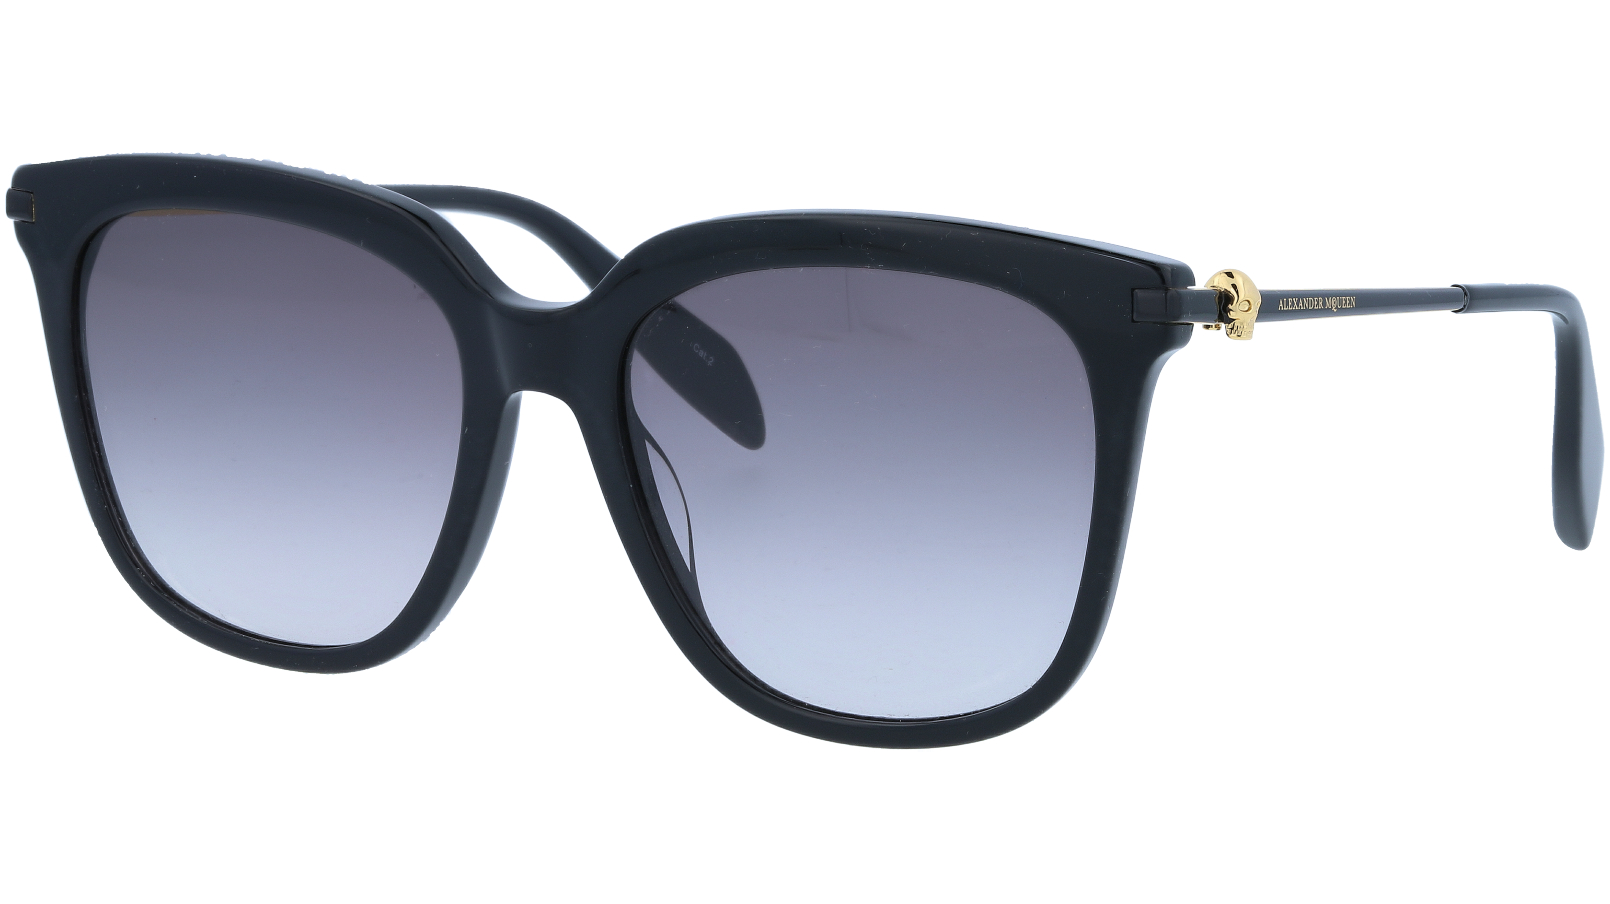 ALEXANDER MCQUEEN AM0107S 001 55 BLACK Sunglasses